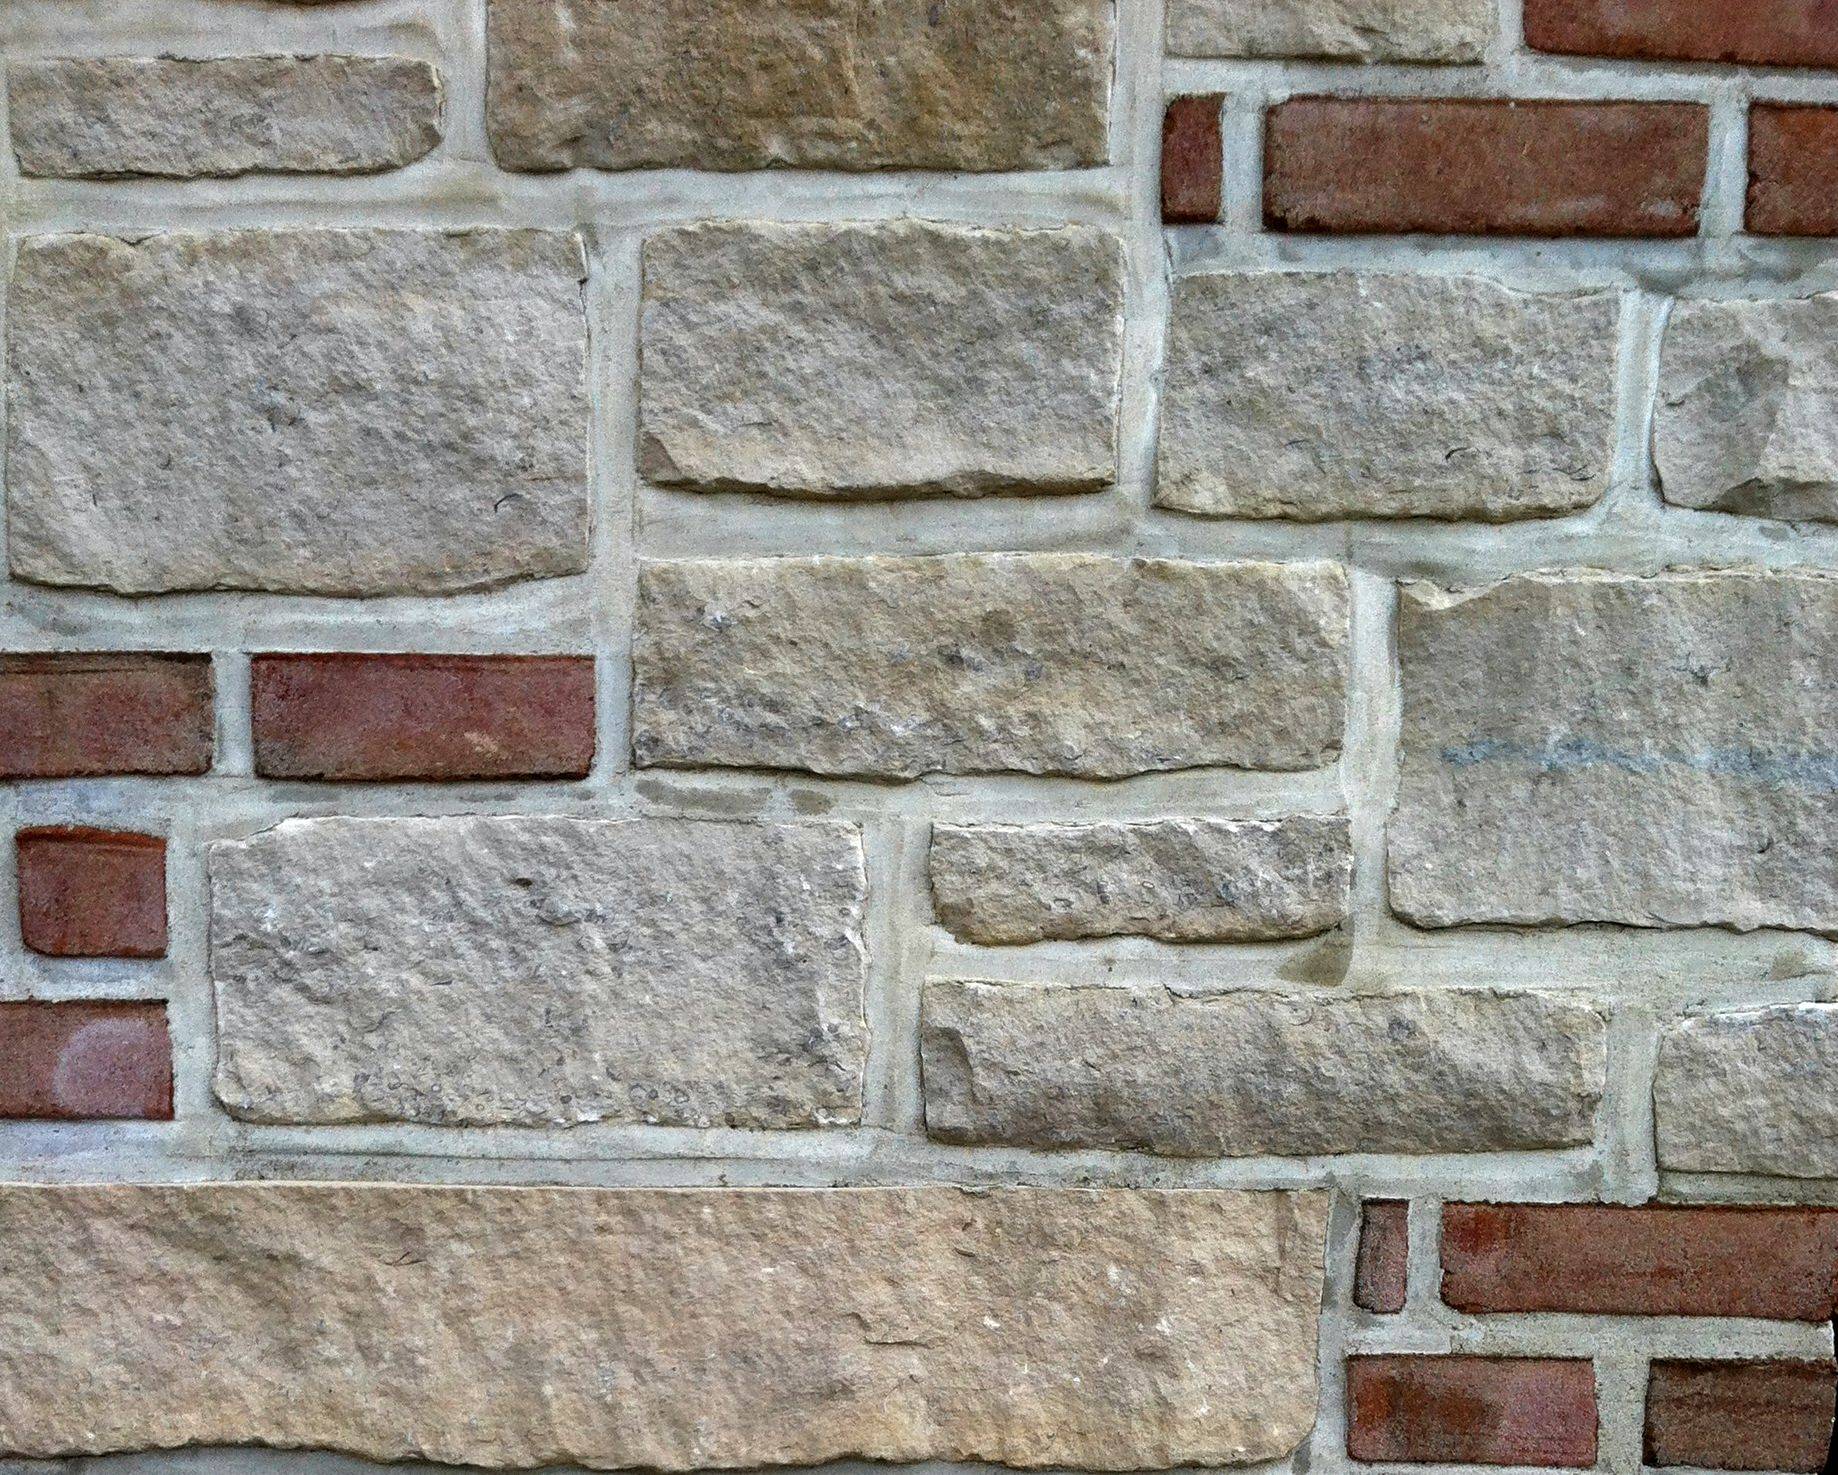 Our products - builder's stone & masonry learn more about